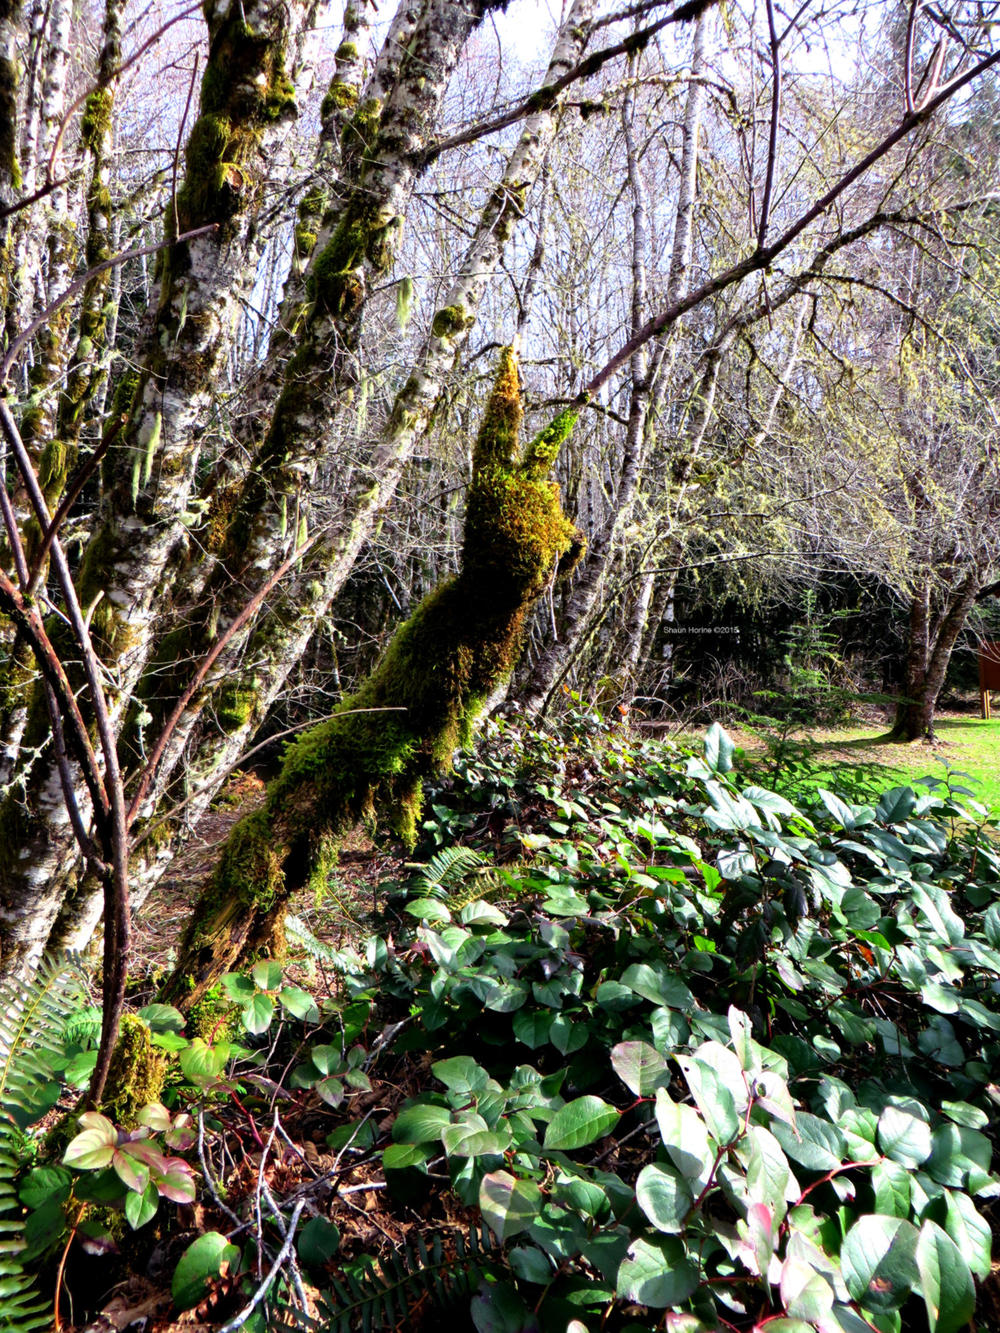 A moss bunny in the wild. A rare sight! March 1st, 2015